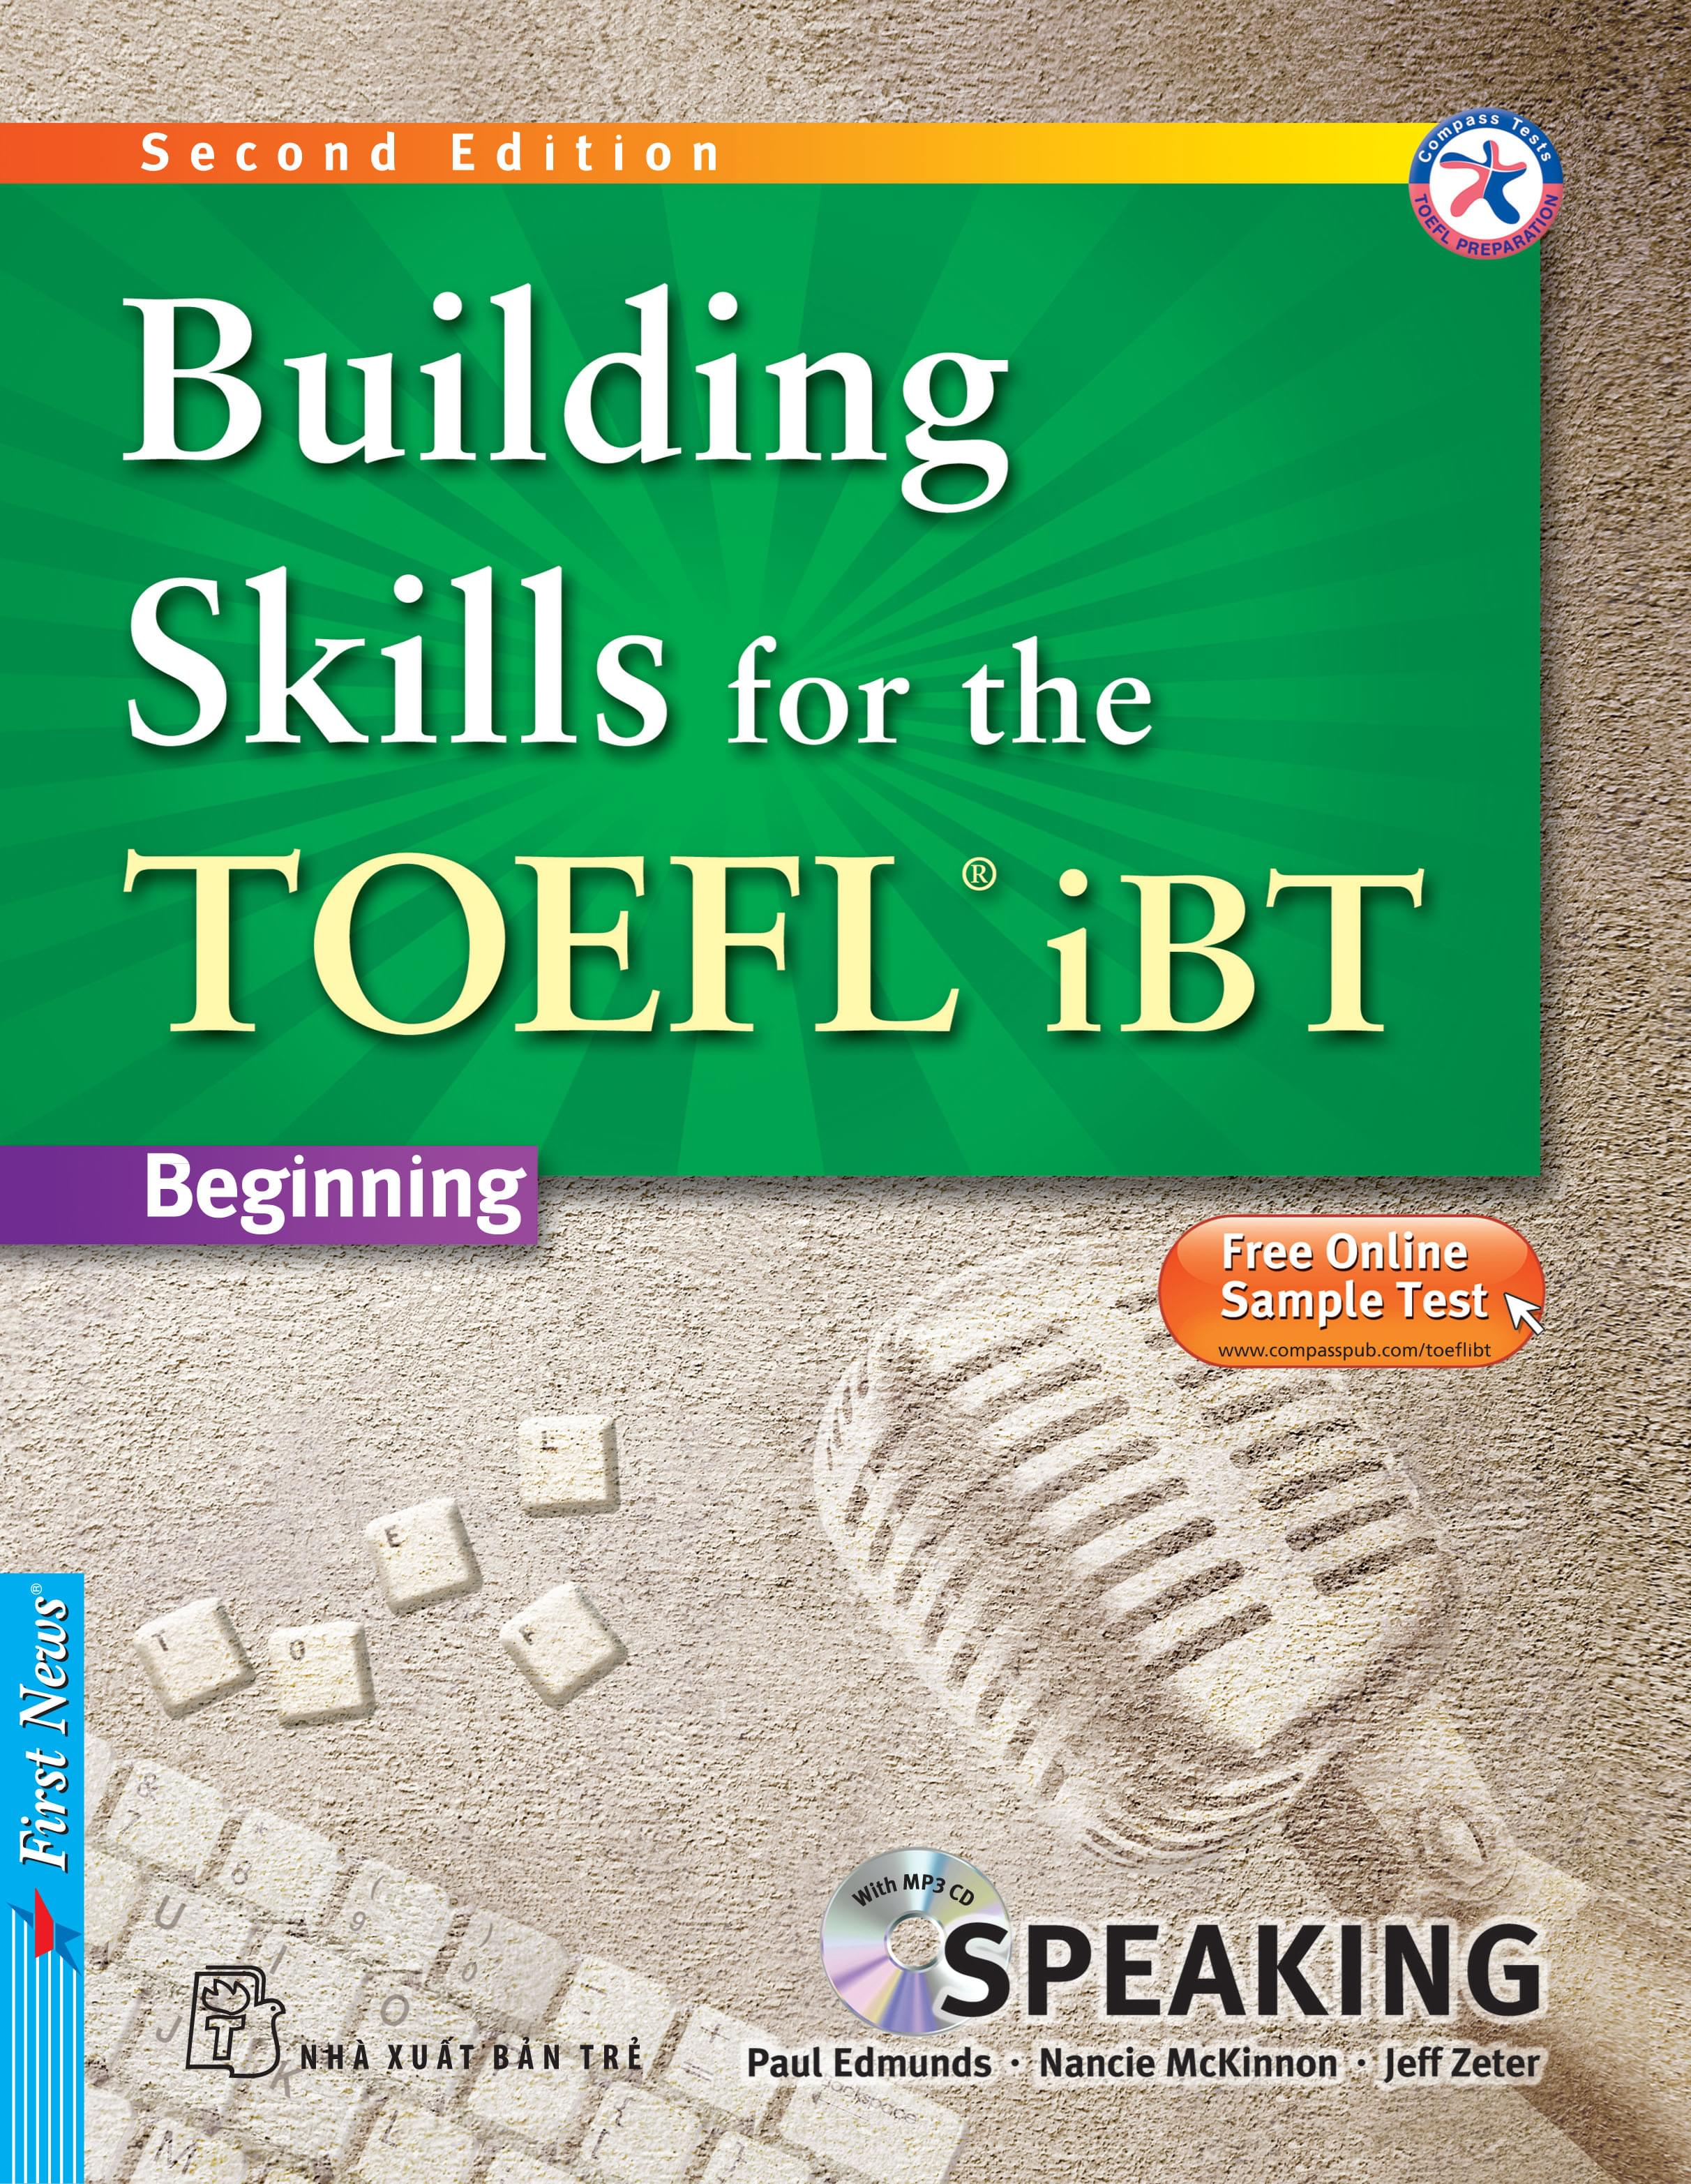 BUILDING SKILLS FOR THE TOEFL IBT - SPEAKING (Kèm CD Mp3)